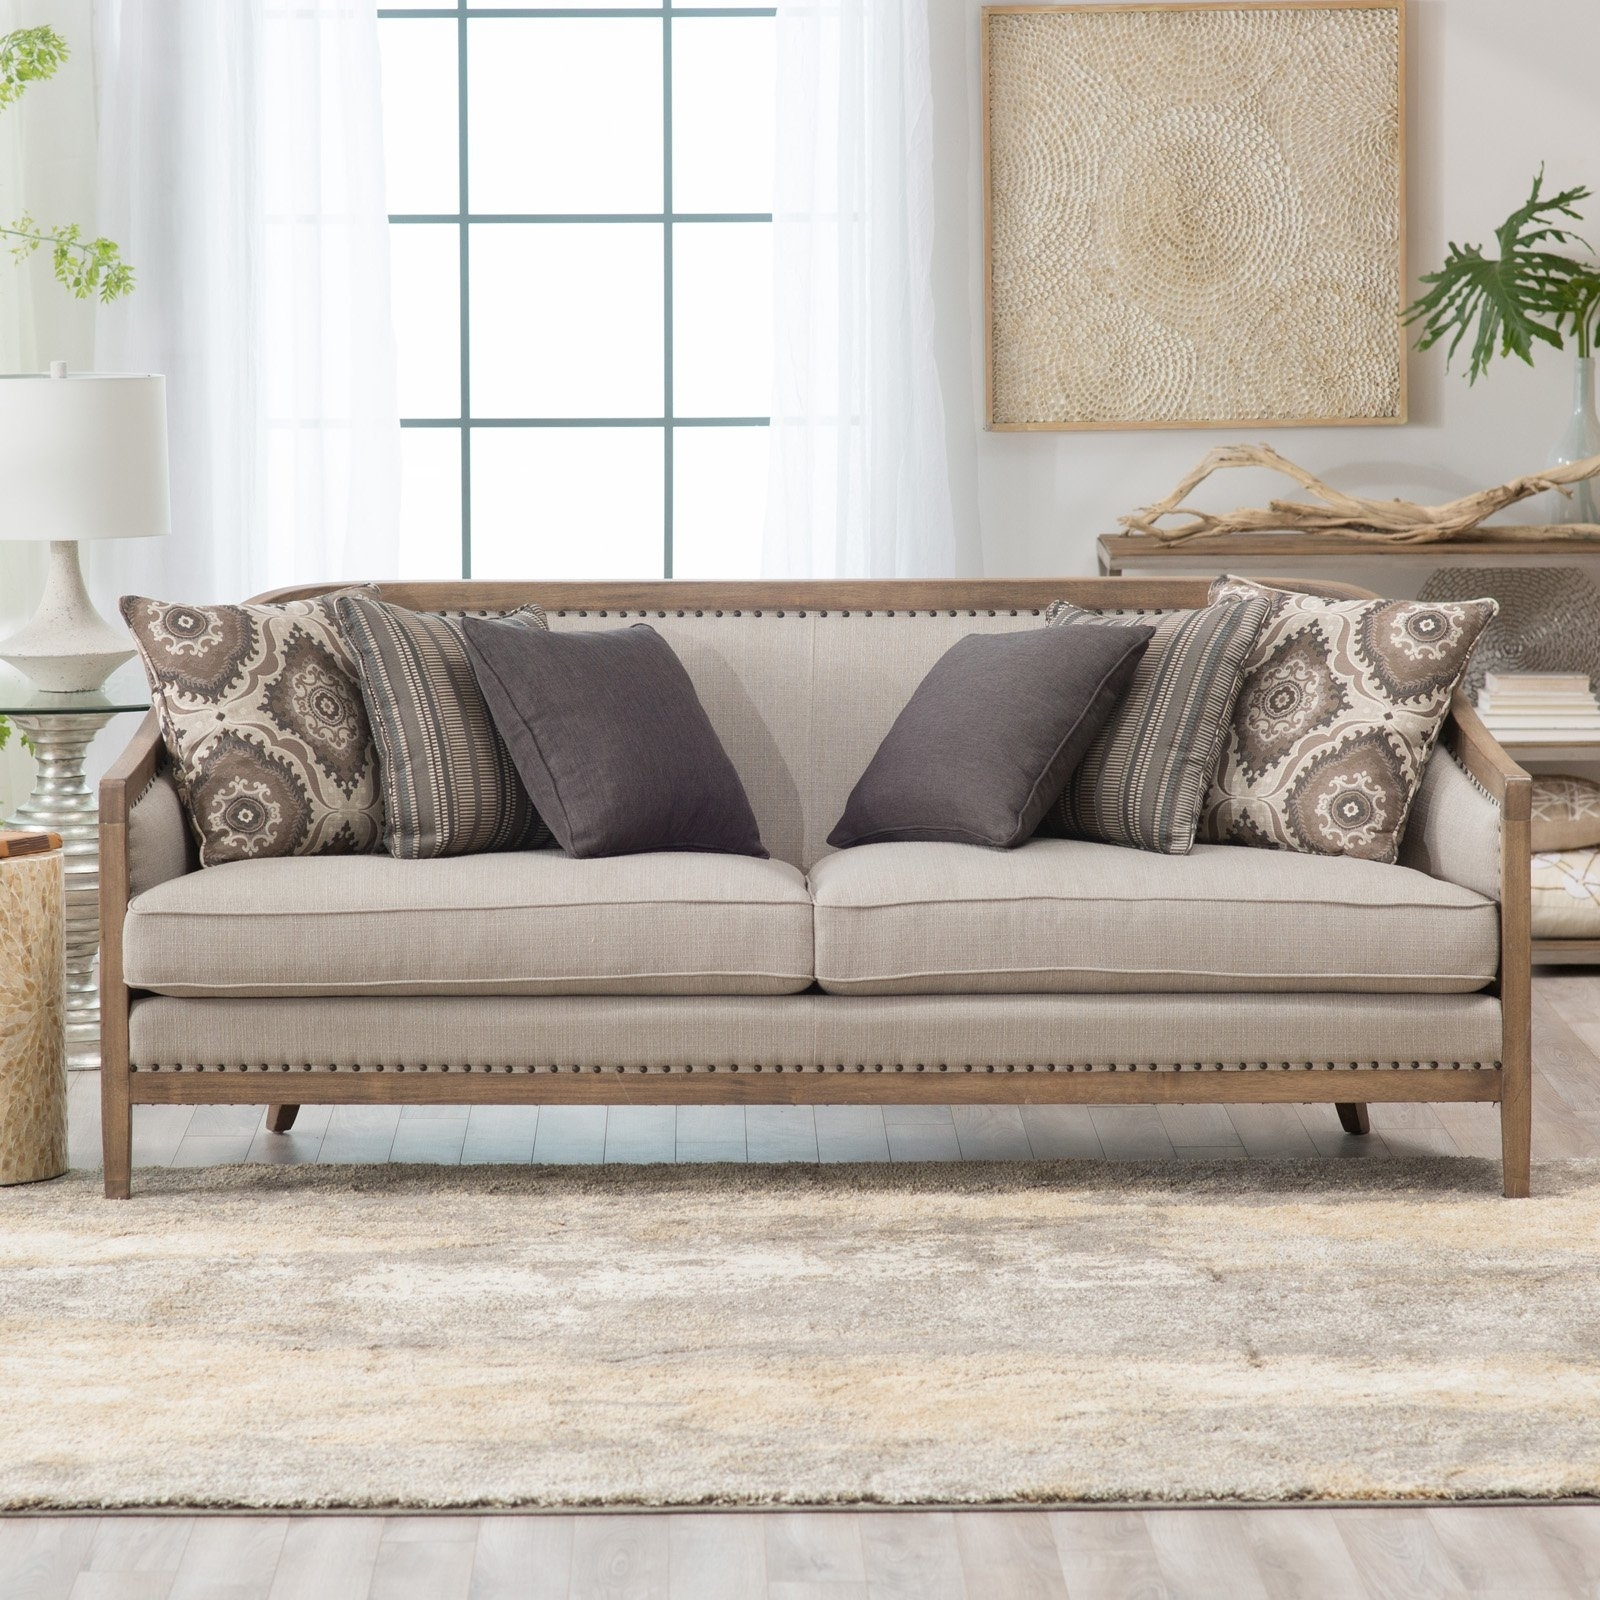 Belham Living Harper Sofa | Hayneedle In Harper Down 3 Piece Sectionals (View 22 of 25)